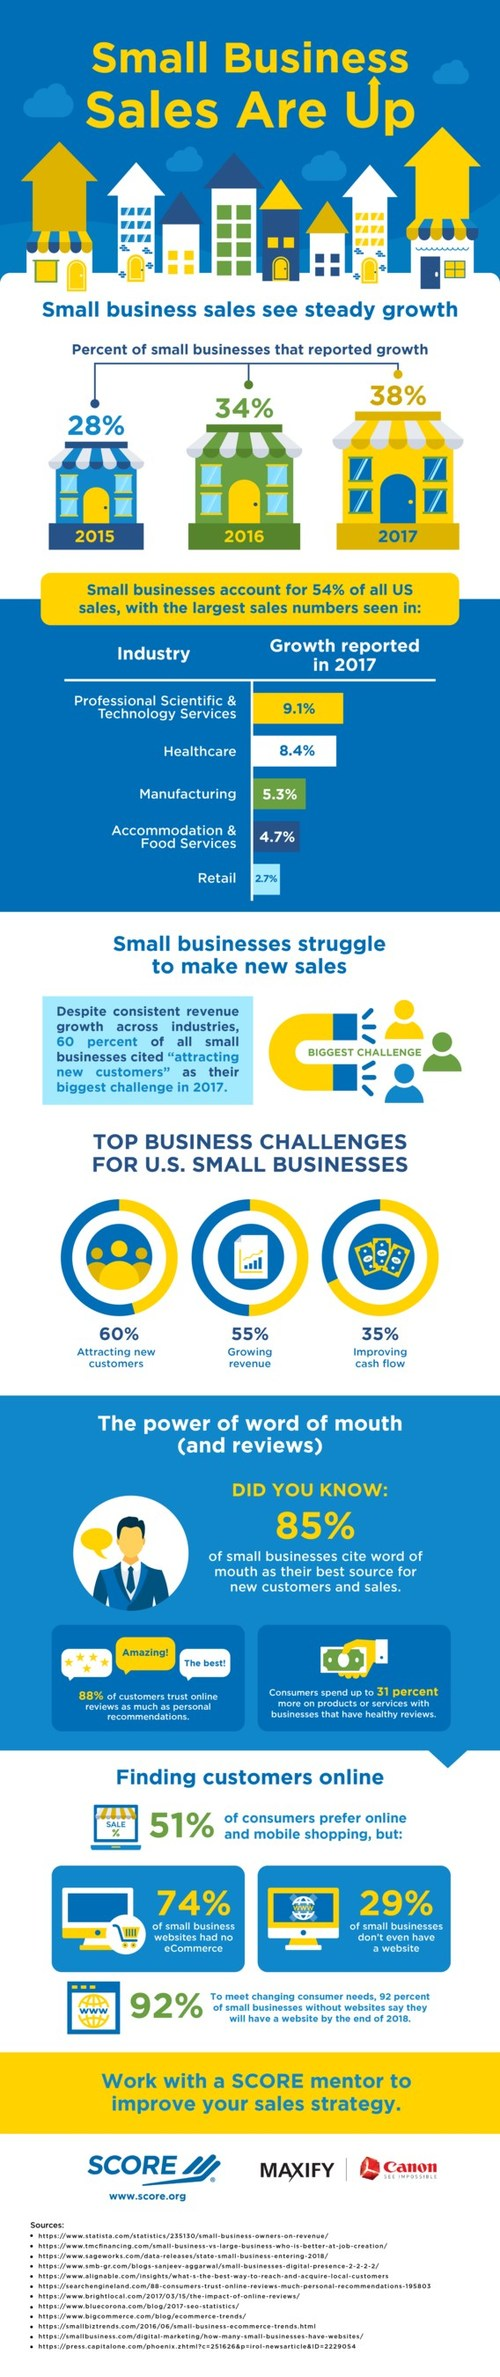 SCORE, the nation's largest network of volunteer, expert business mentors, has published an infographic showing that small businesses now account for 54% of U.S. sales, with 38% of small businesses reporting growth, and revenue trending upward.